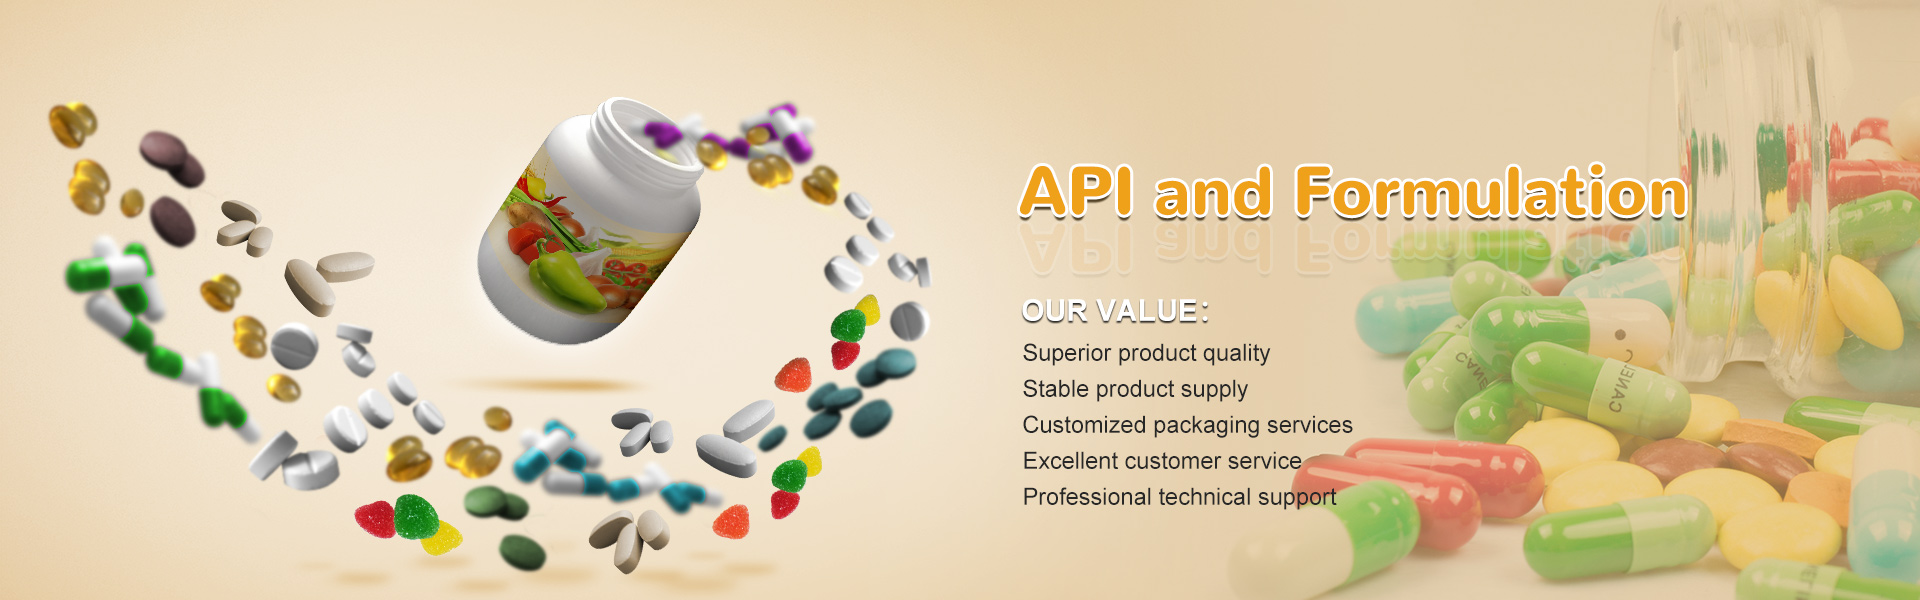 API and Formulation